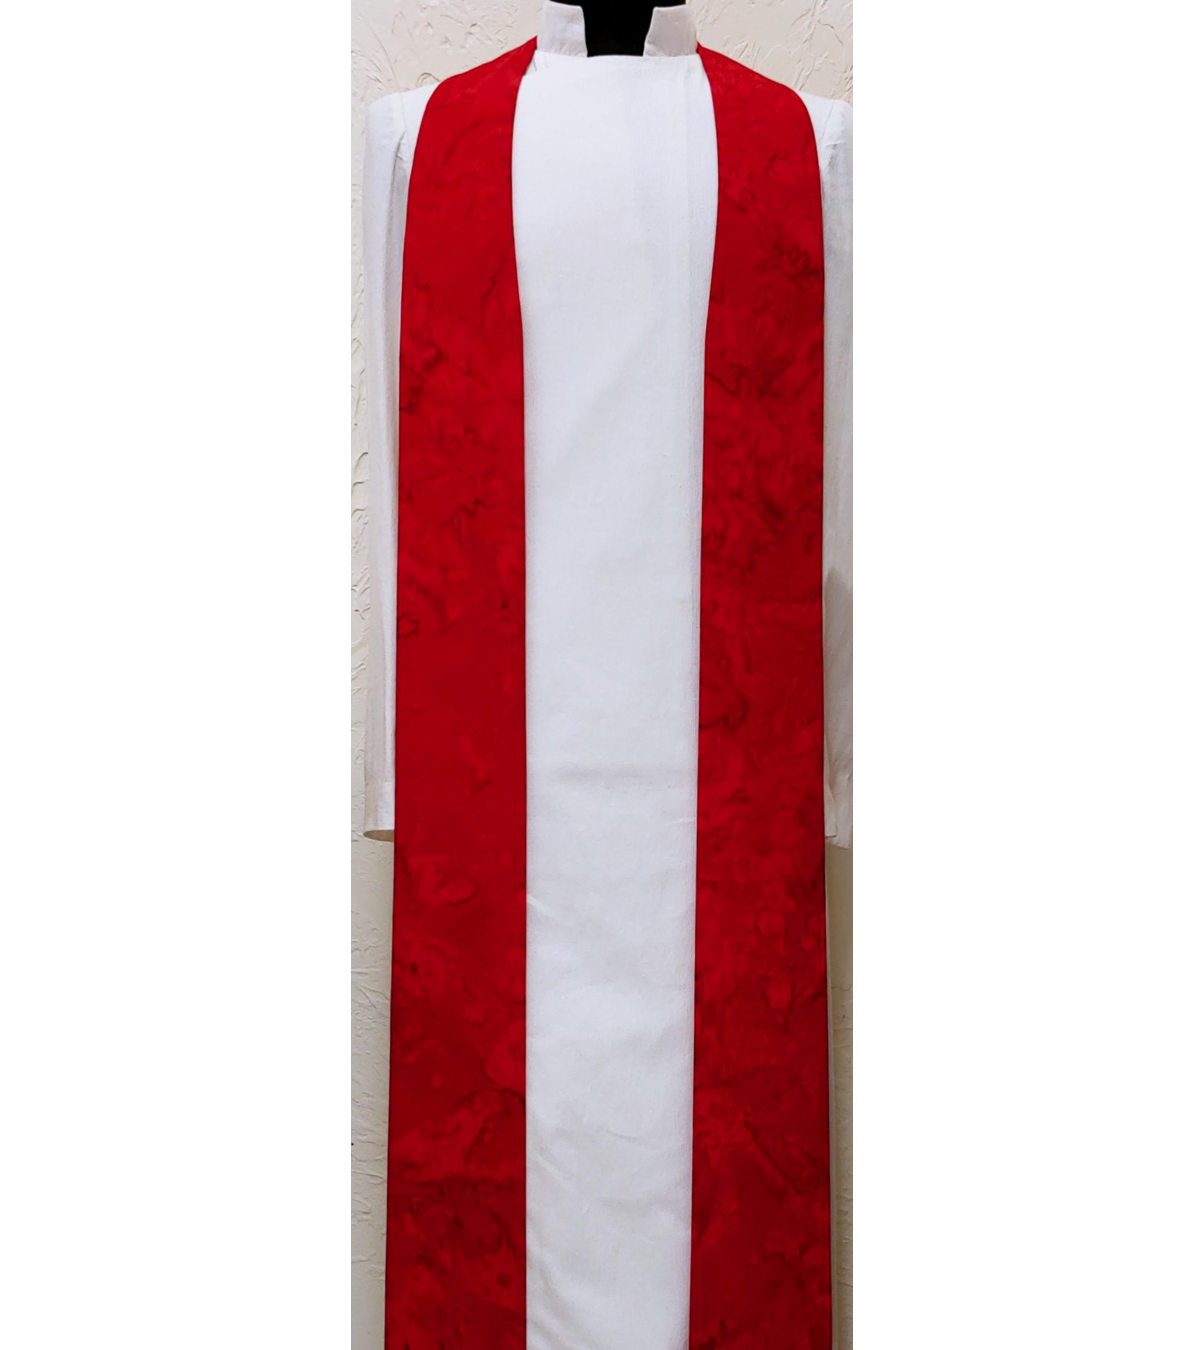 READY TO SHIP! Basic Batiks: Red Clergy Stole with no Added Design